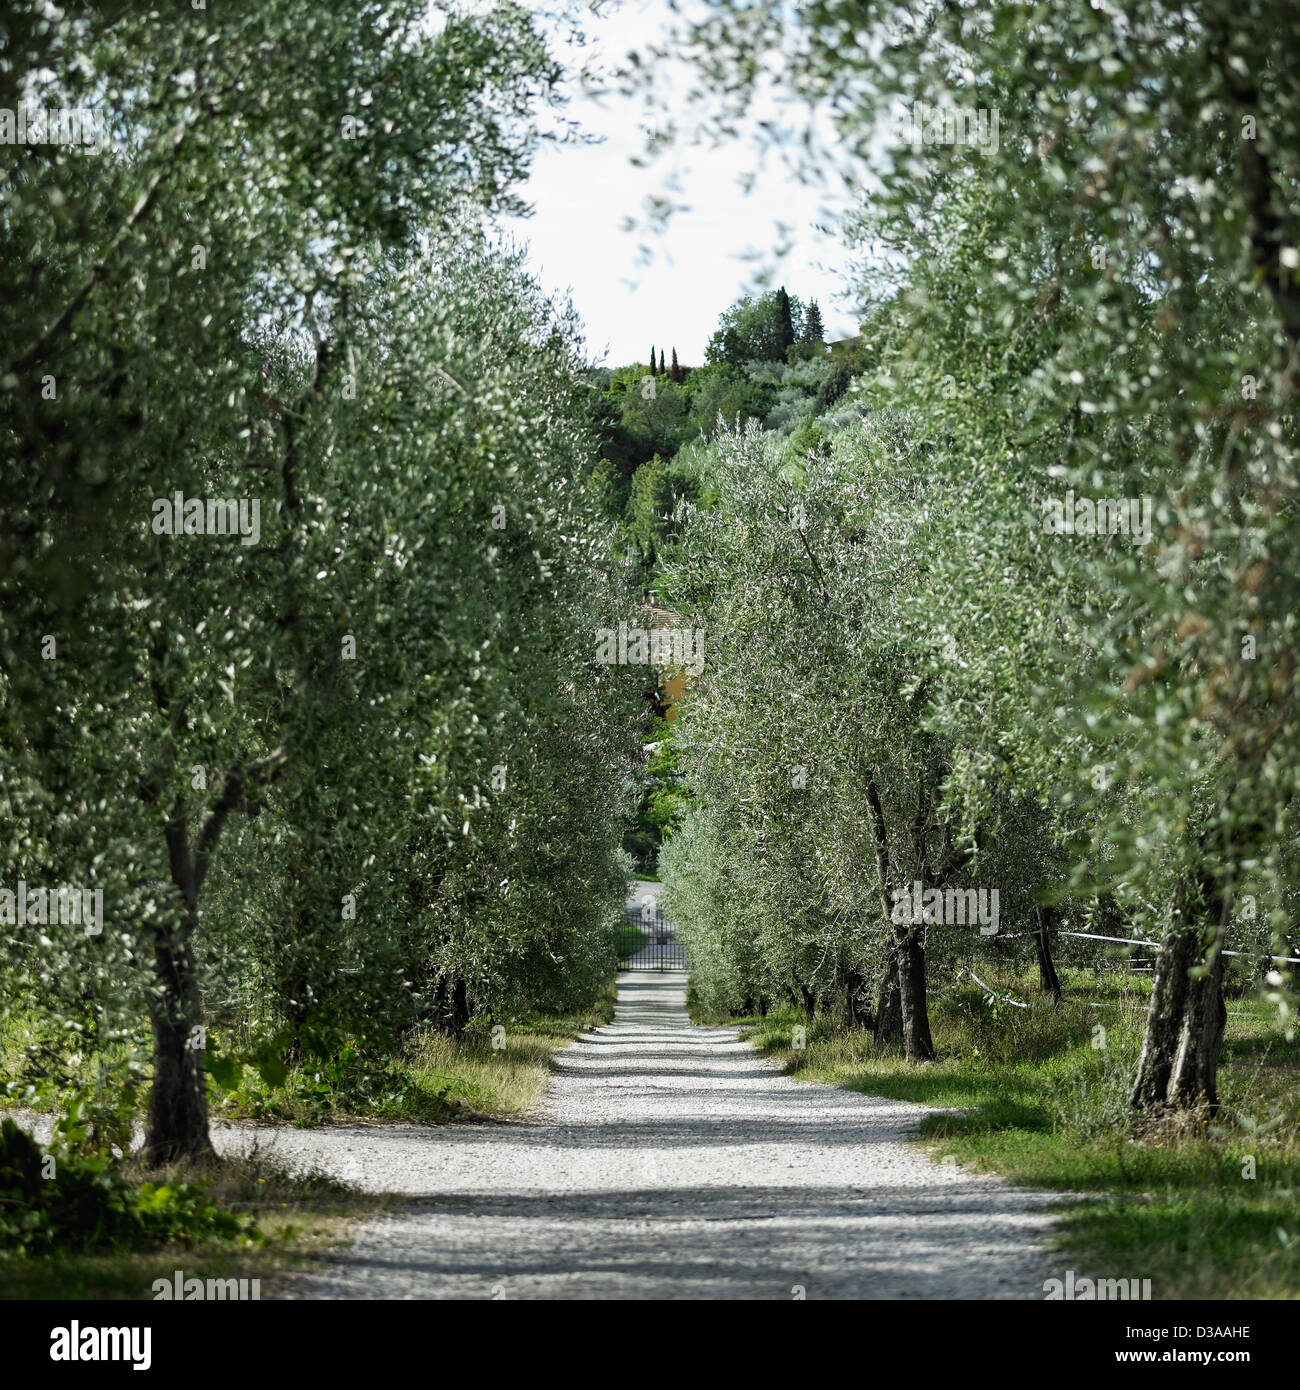 Tree-lined dirt road in rural landscape - Stock Image